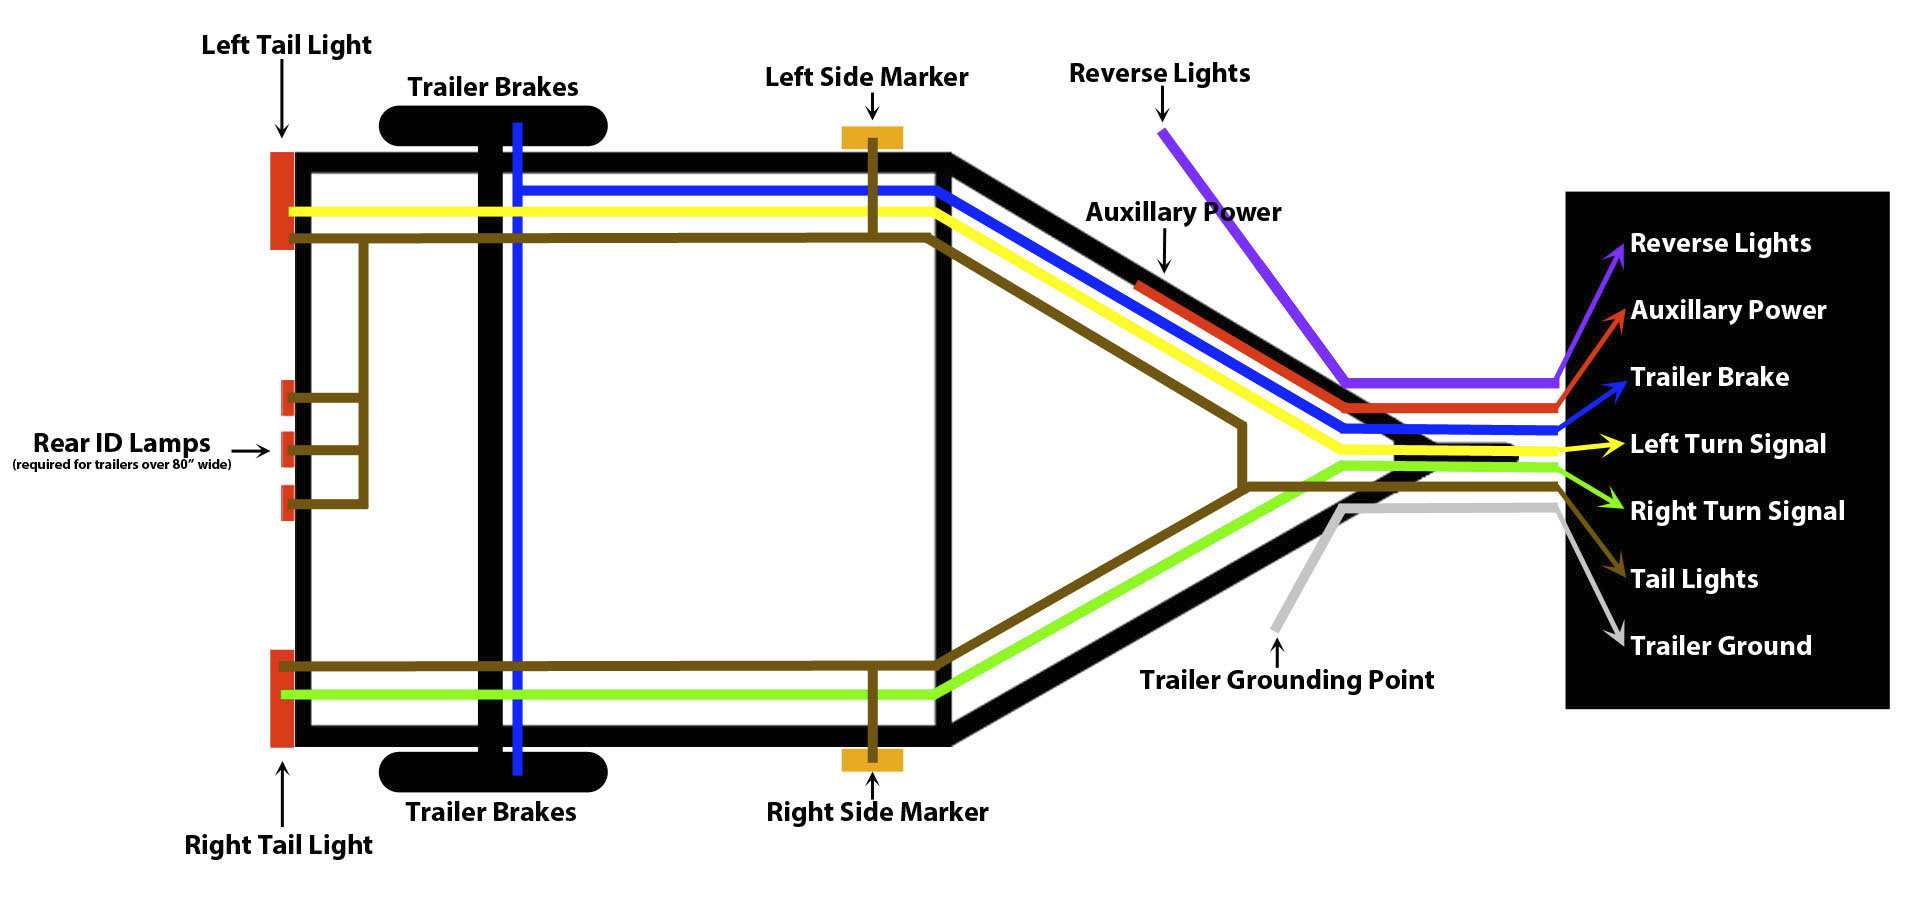 How To Wire Trailer Lights - Trailer Wiring Guide & Videos - 5 Plug Trailer Wiring Diagram